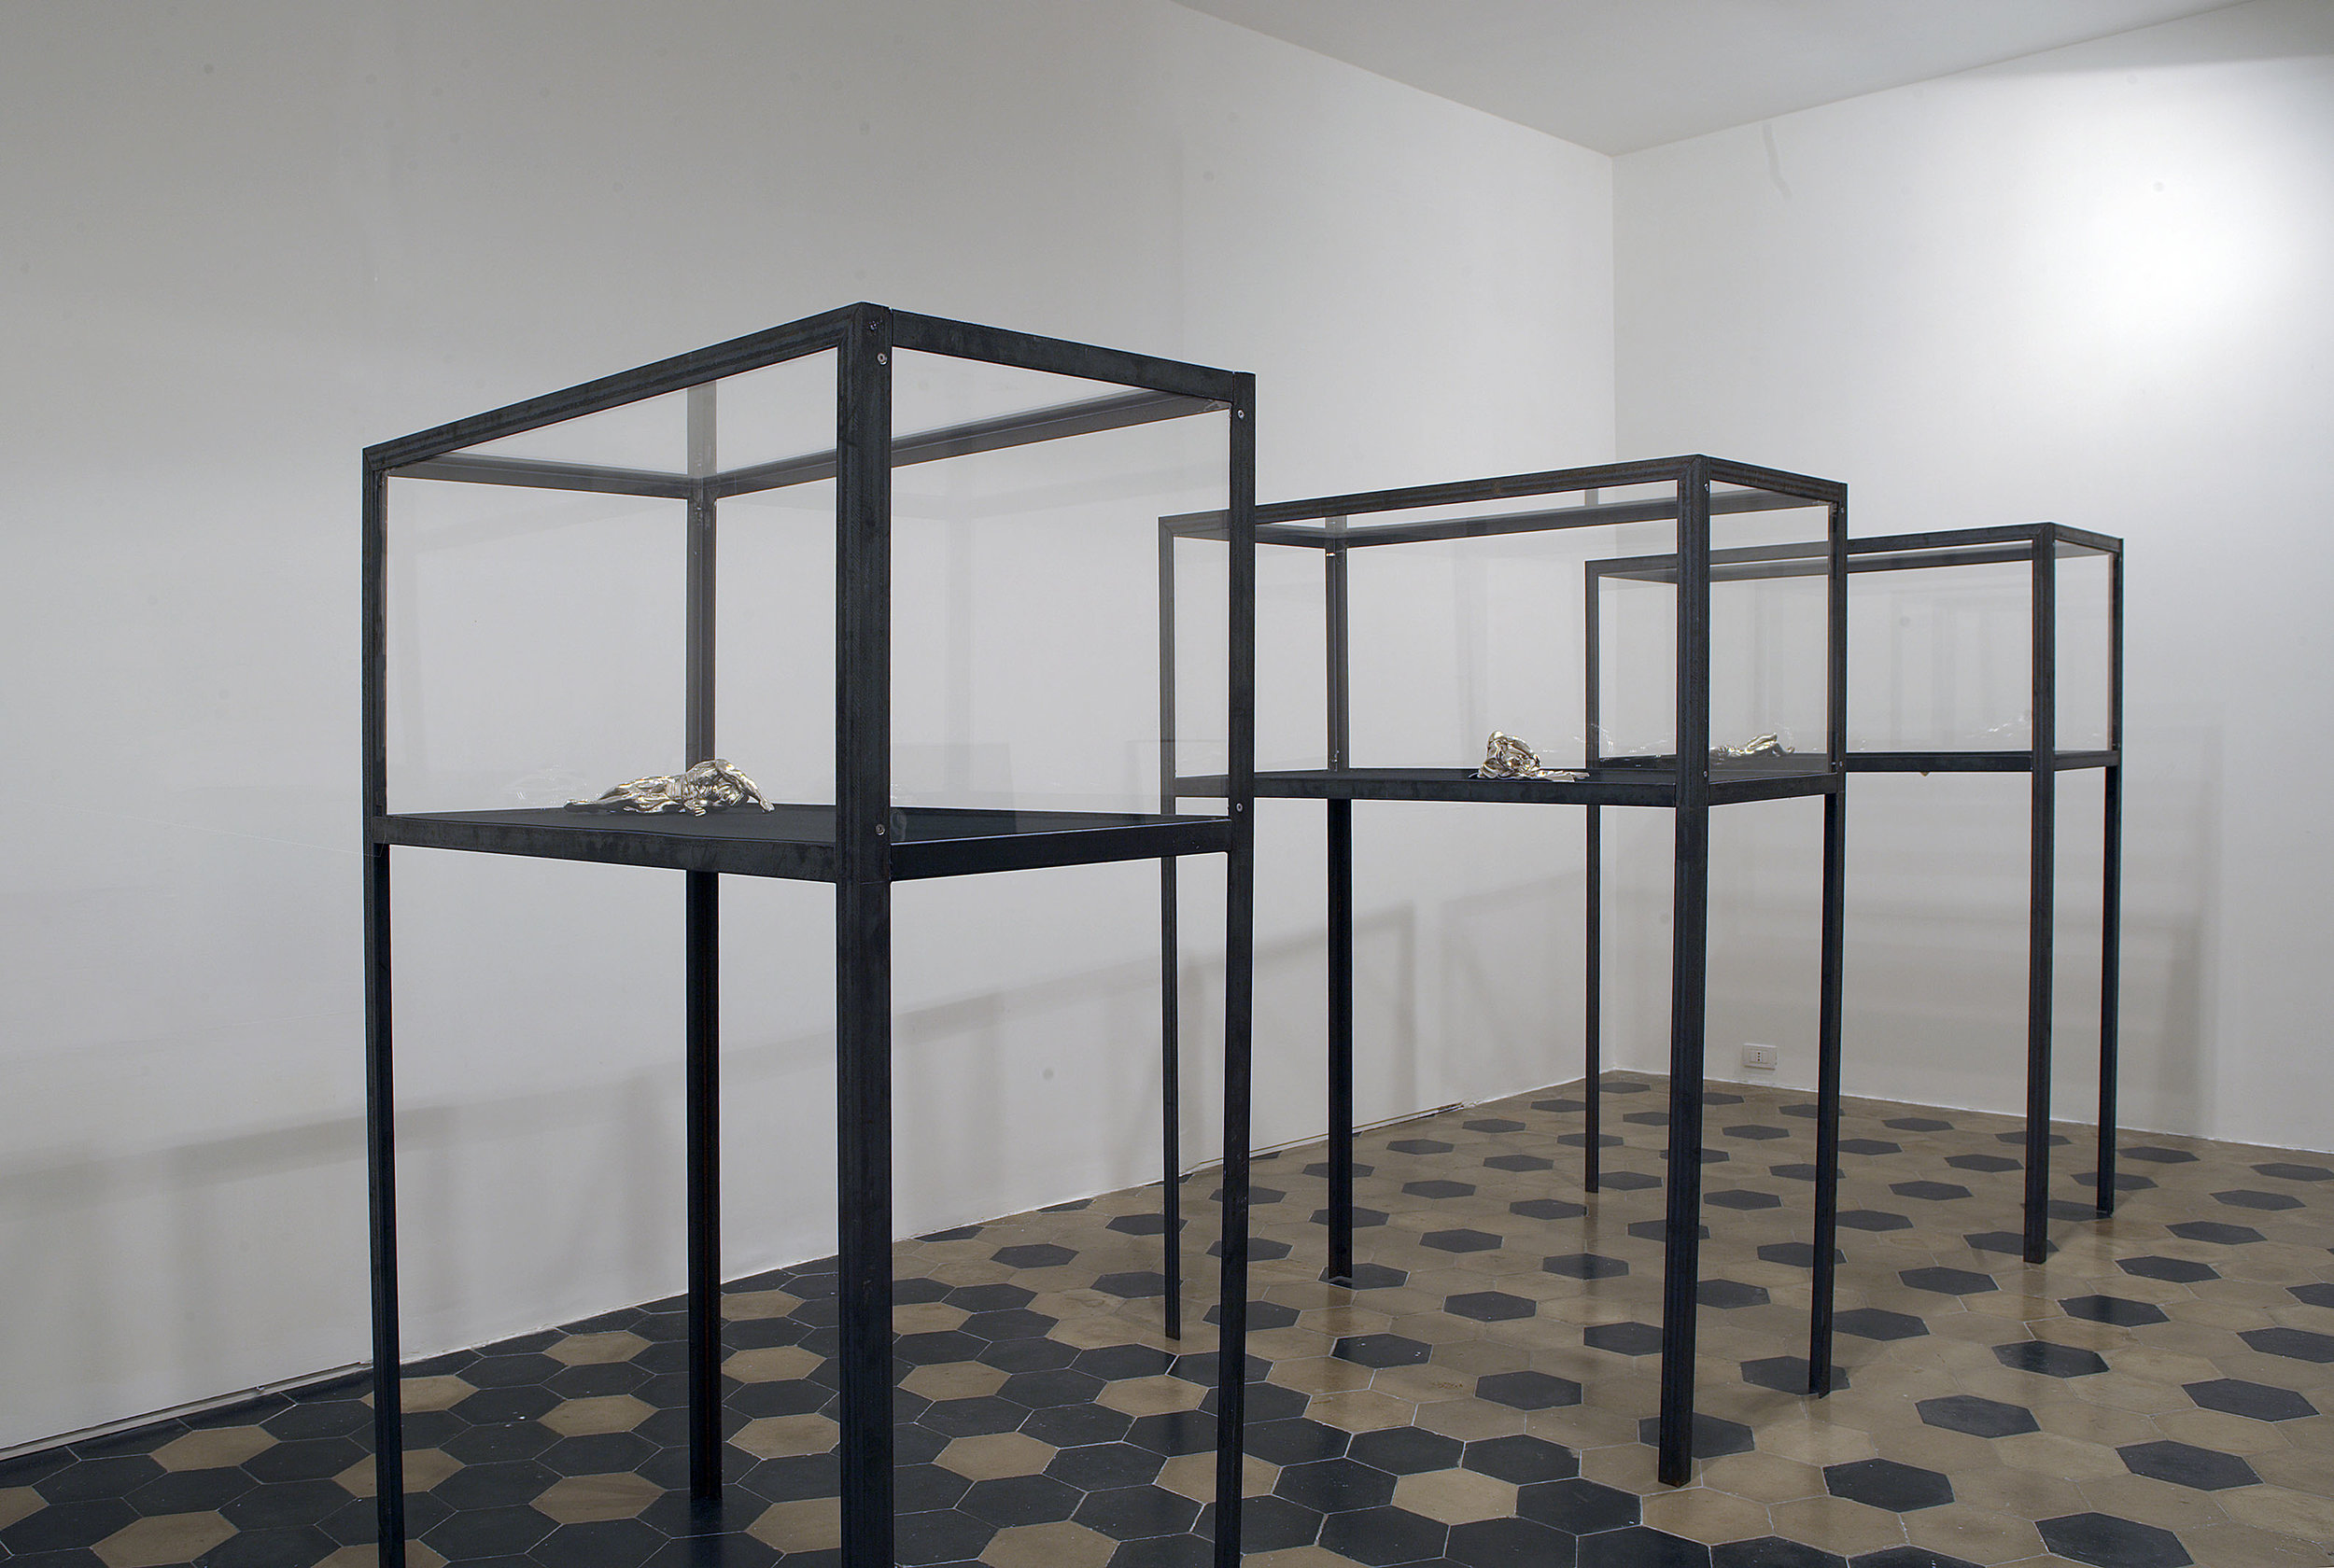 The Age of Chance , 2005 . Mimmo Scognamiglio Artecontemporanea, Naples. Installation view. Photo: Giuseppe Avallone